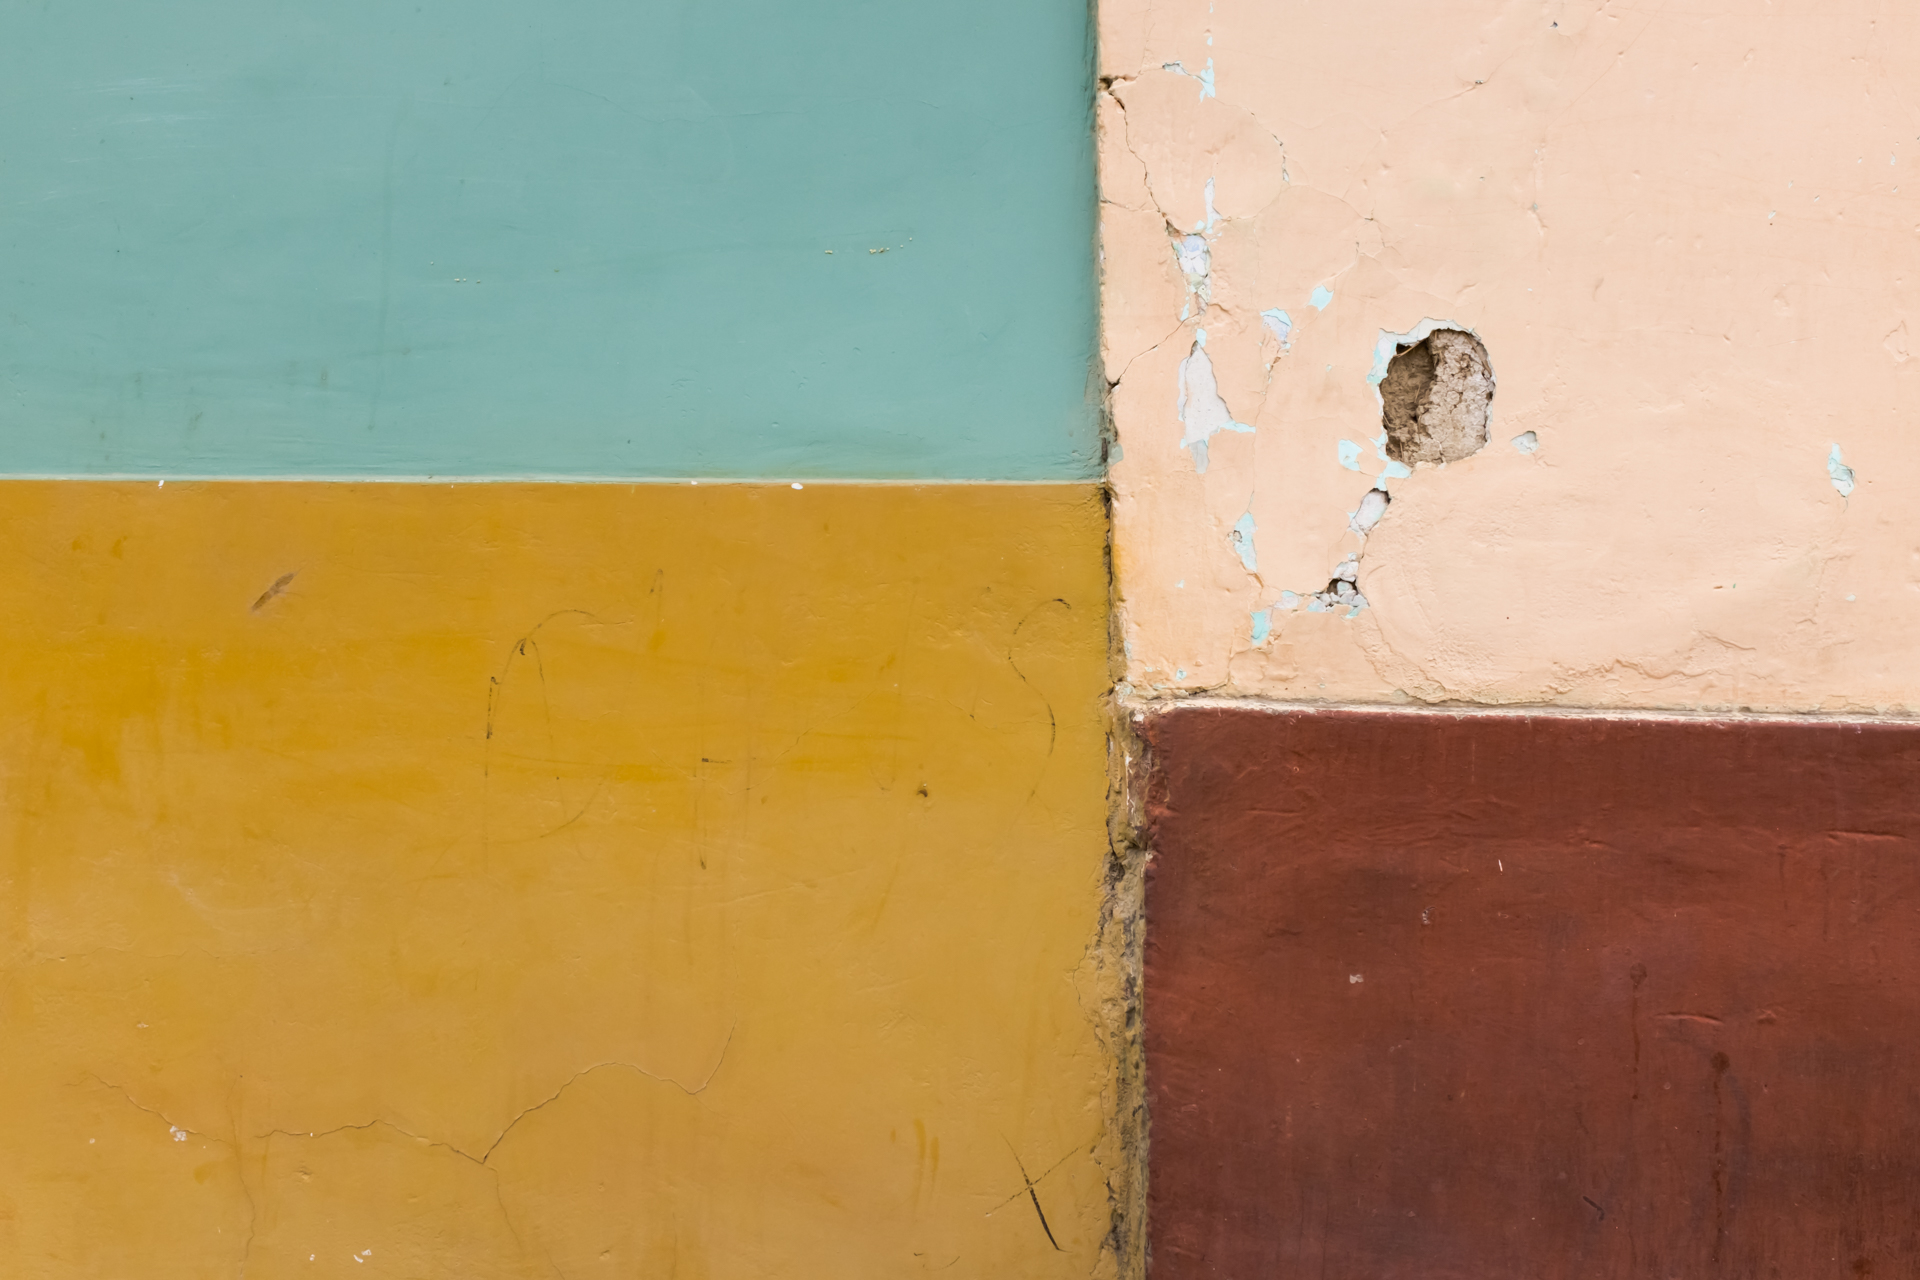 House wall abstract